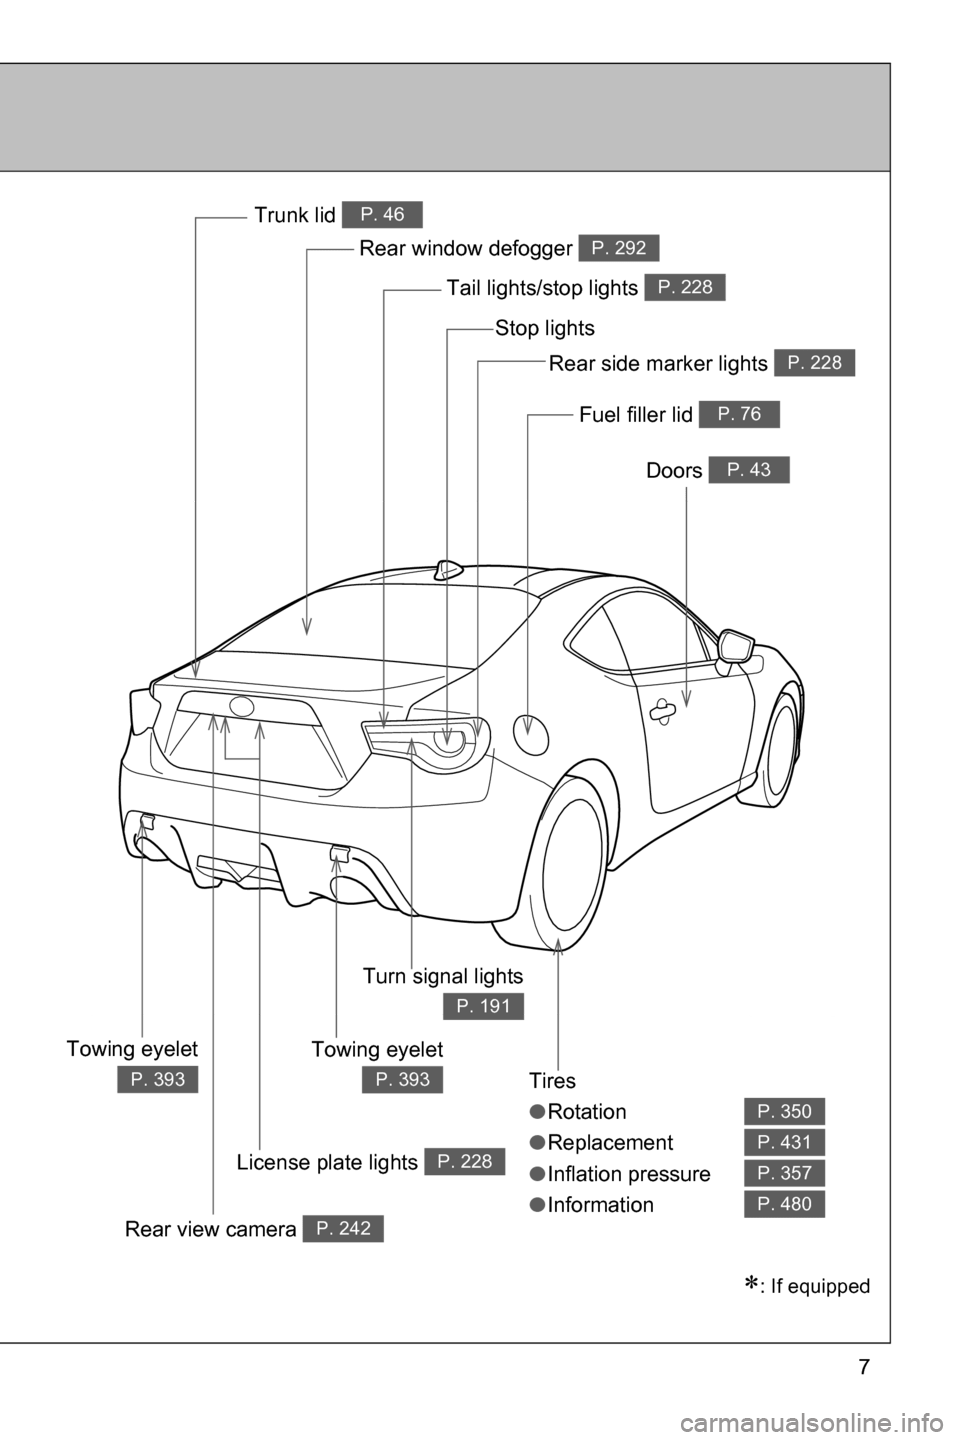 SUBARU BRZ 2017 1.G Owners Manual